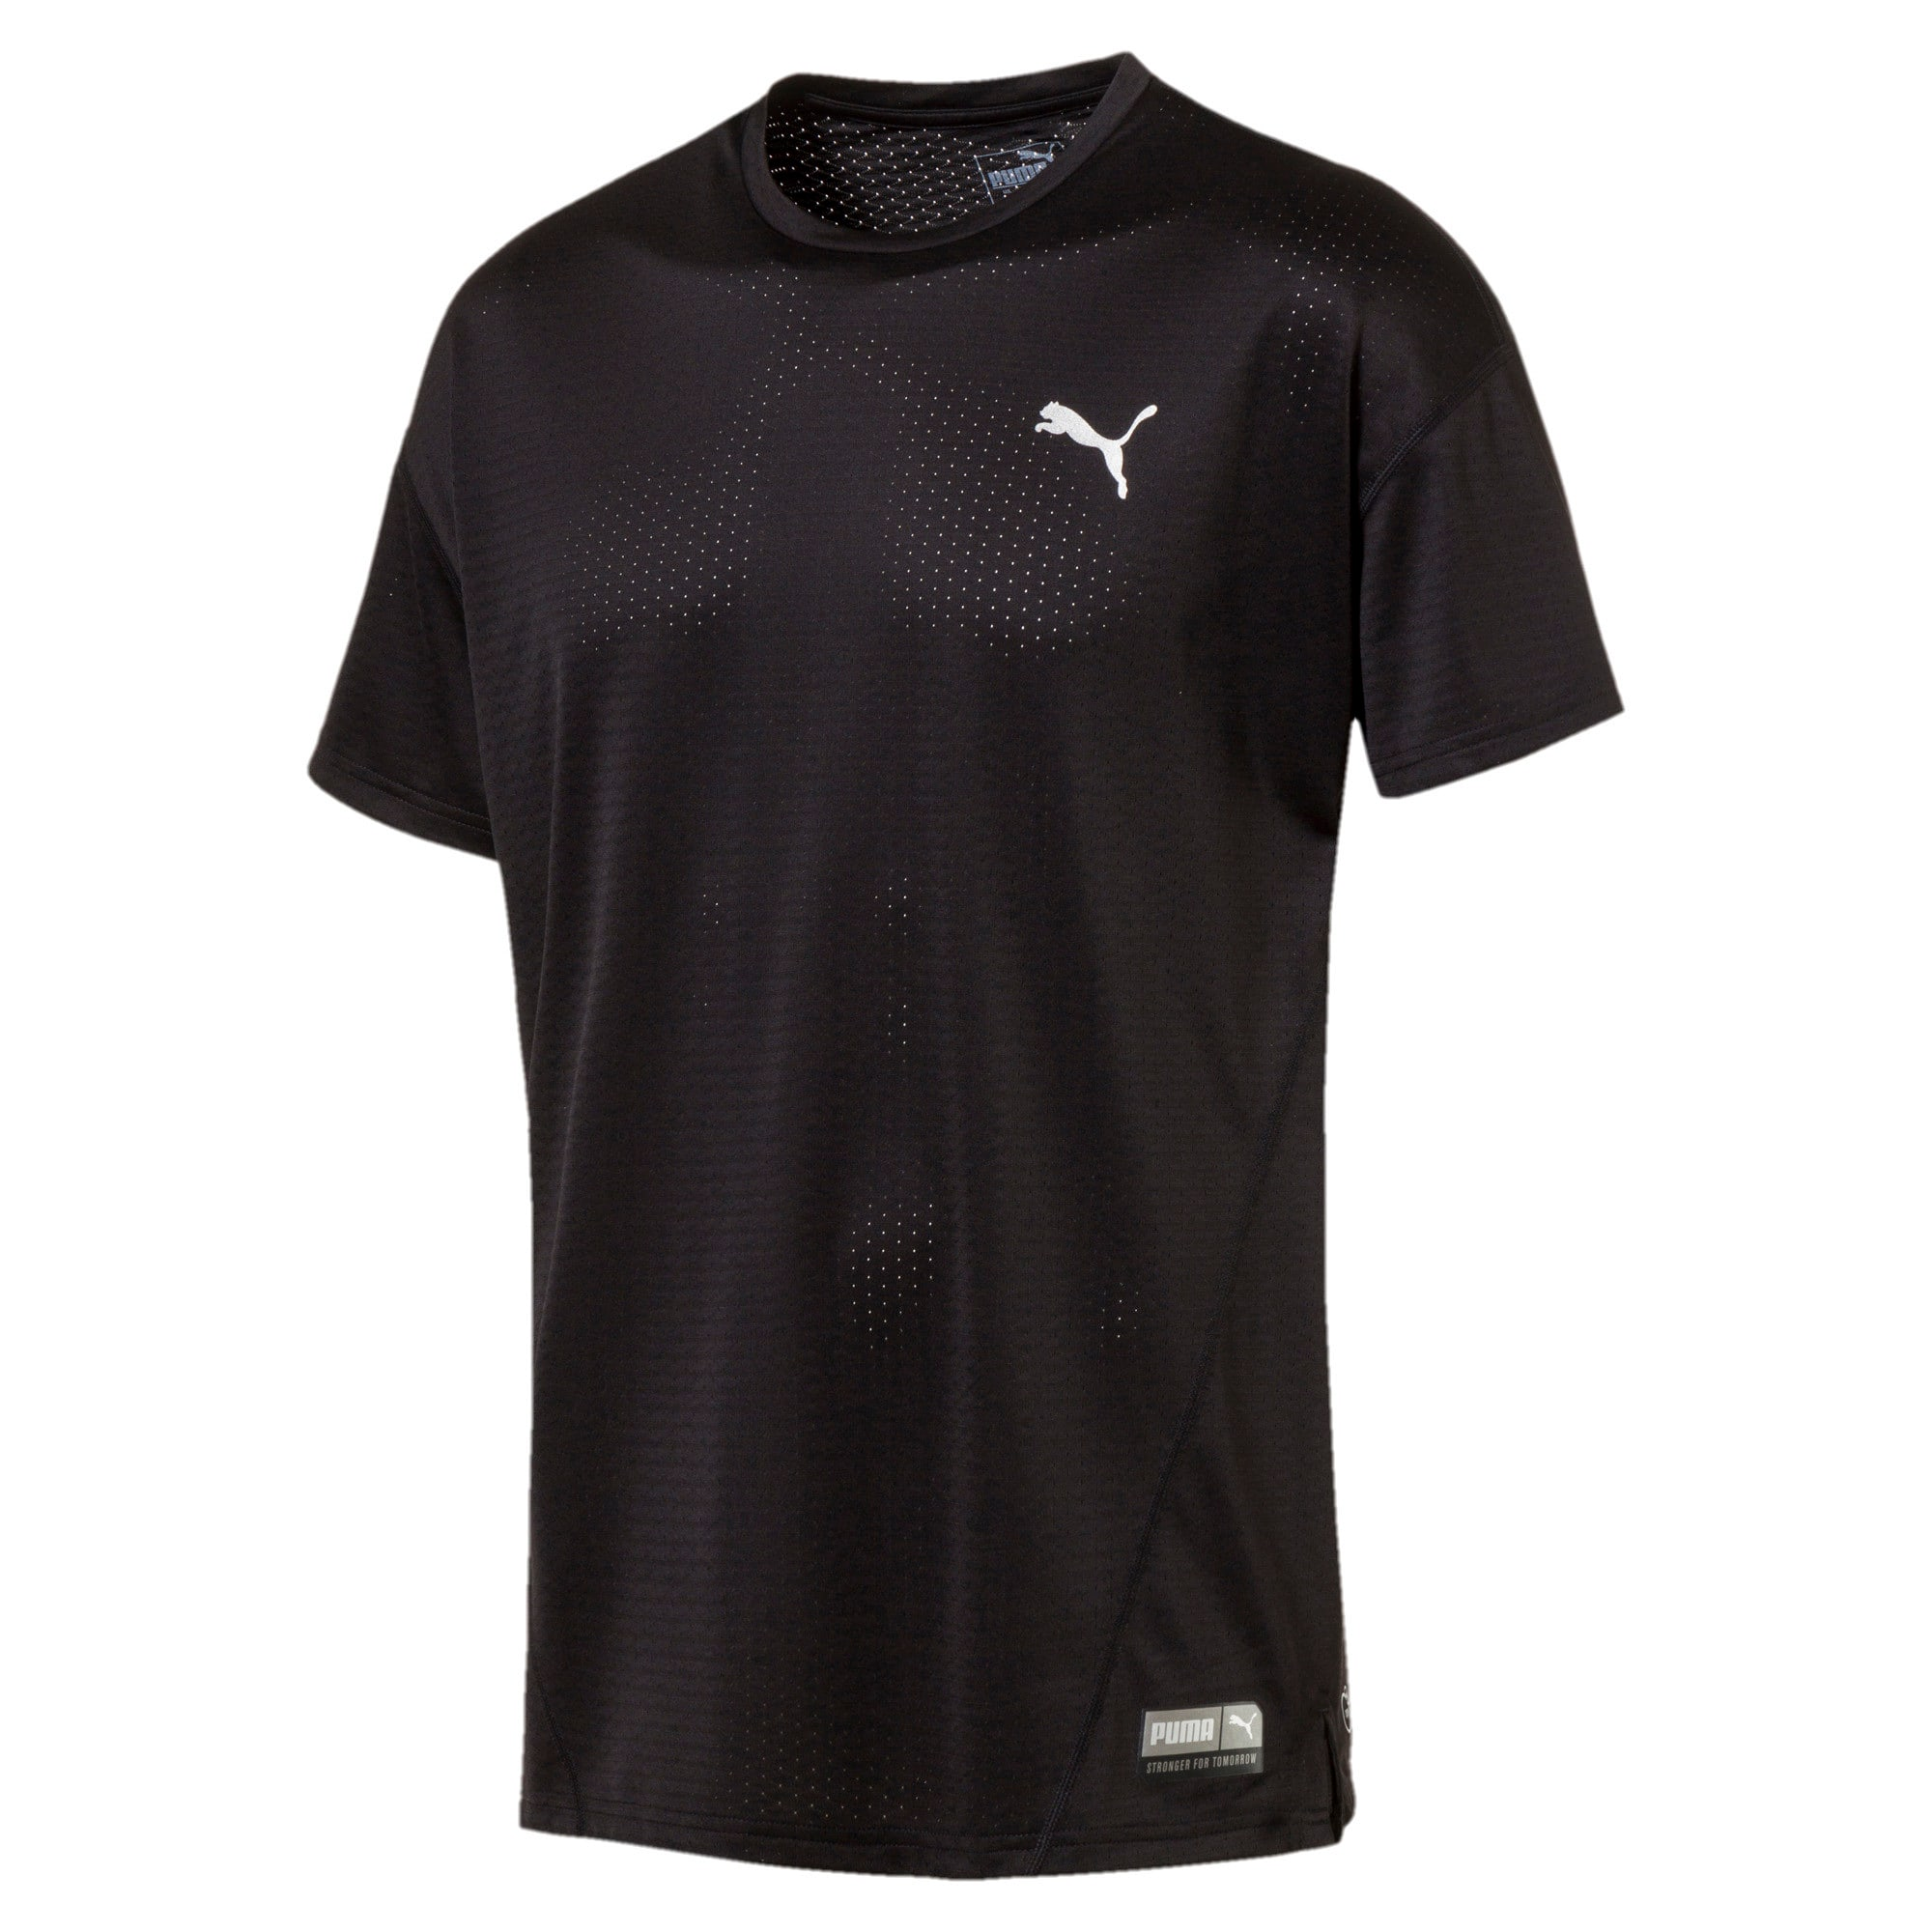 Thumbnail 1 of A.C.E. Short Sleeve Men's Training Top, Puma Black, medium